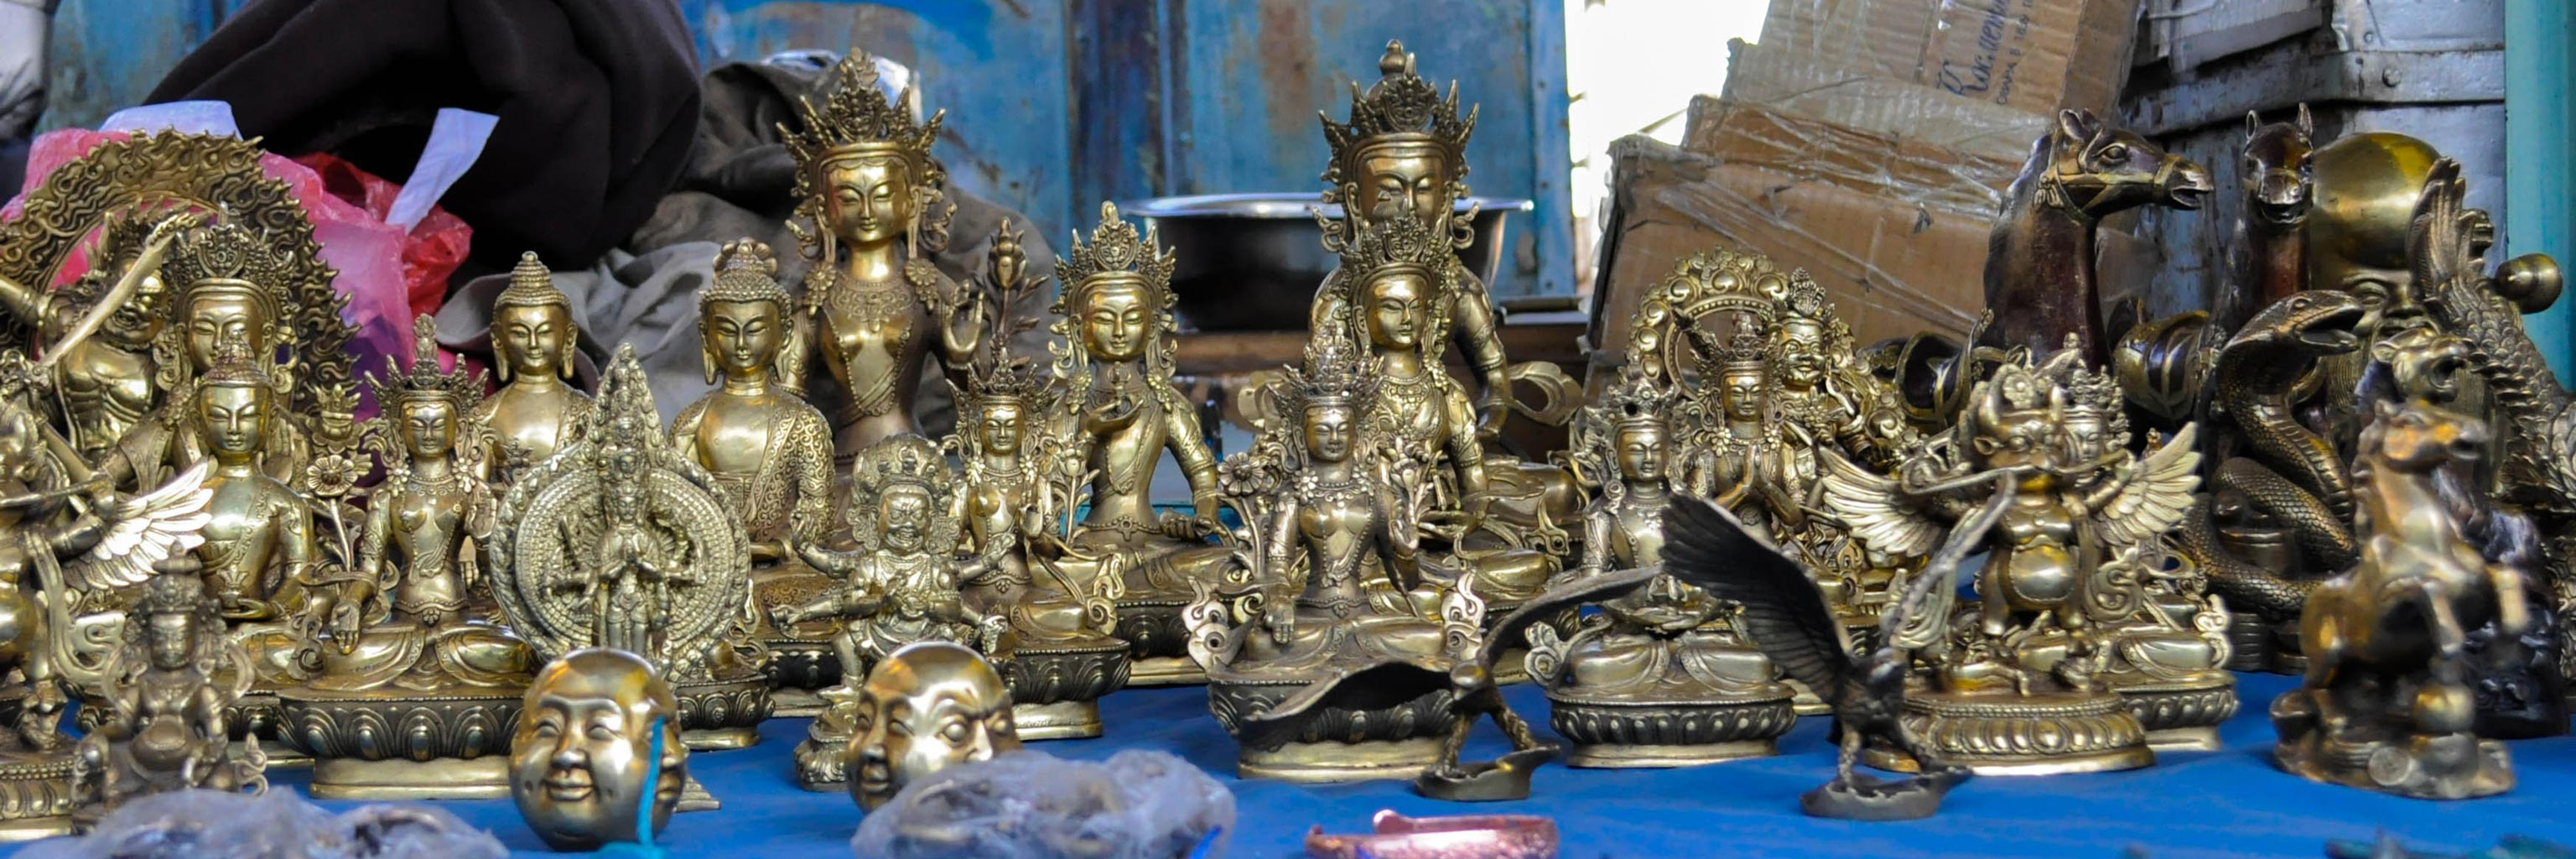 Mongolian statues and artifacts